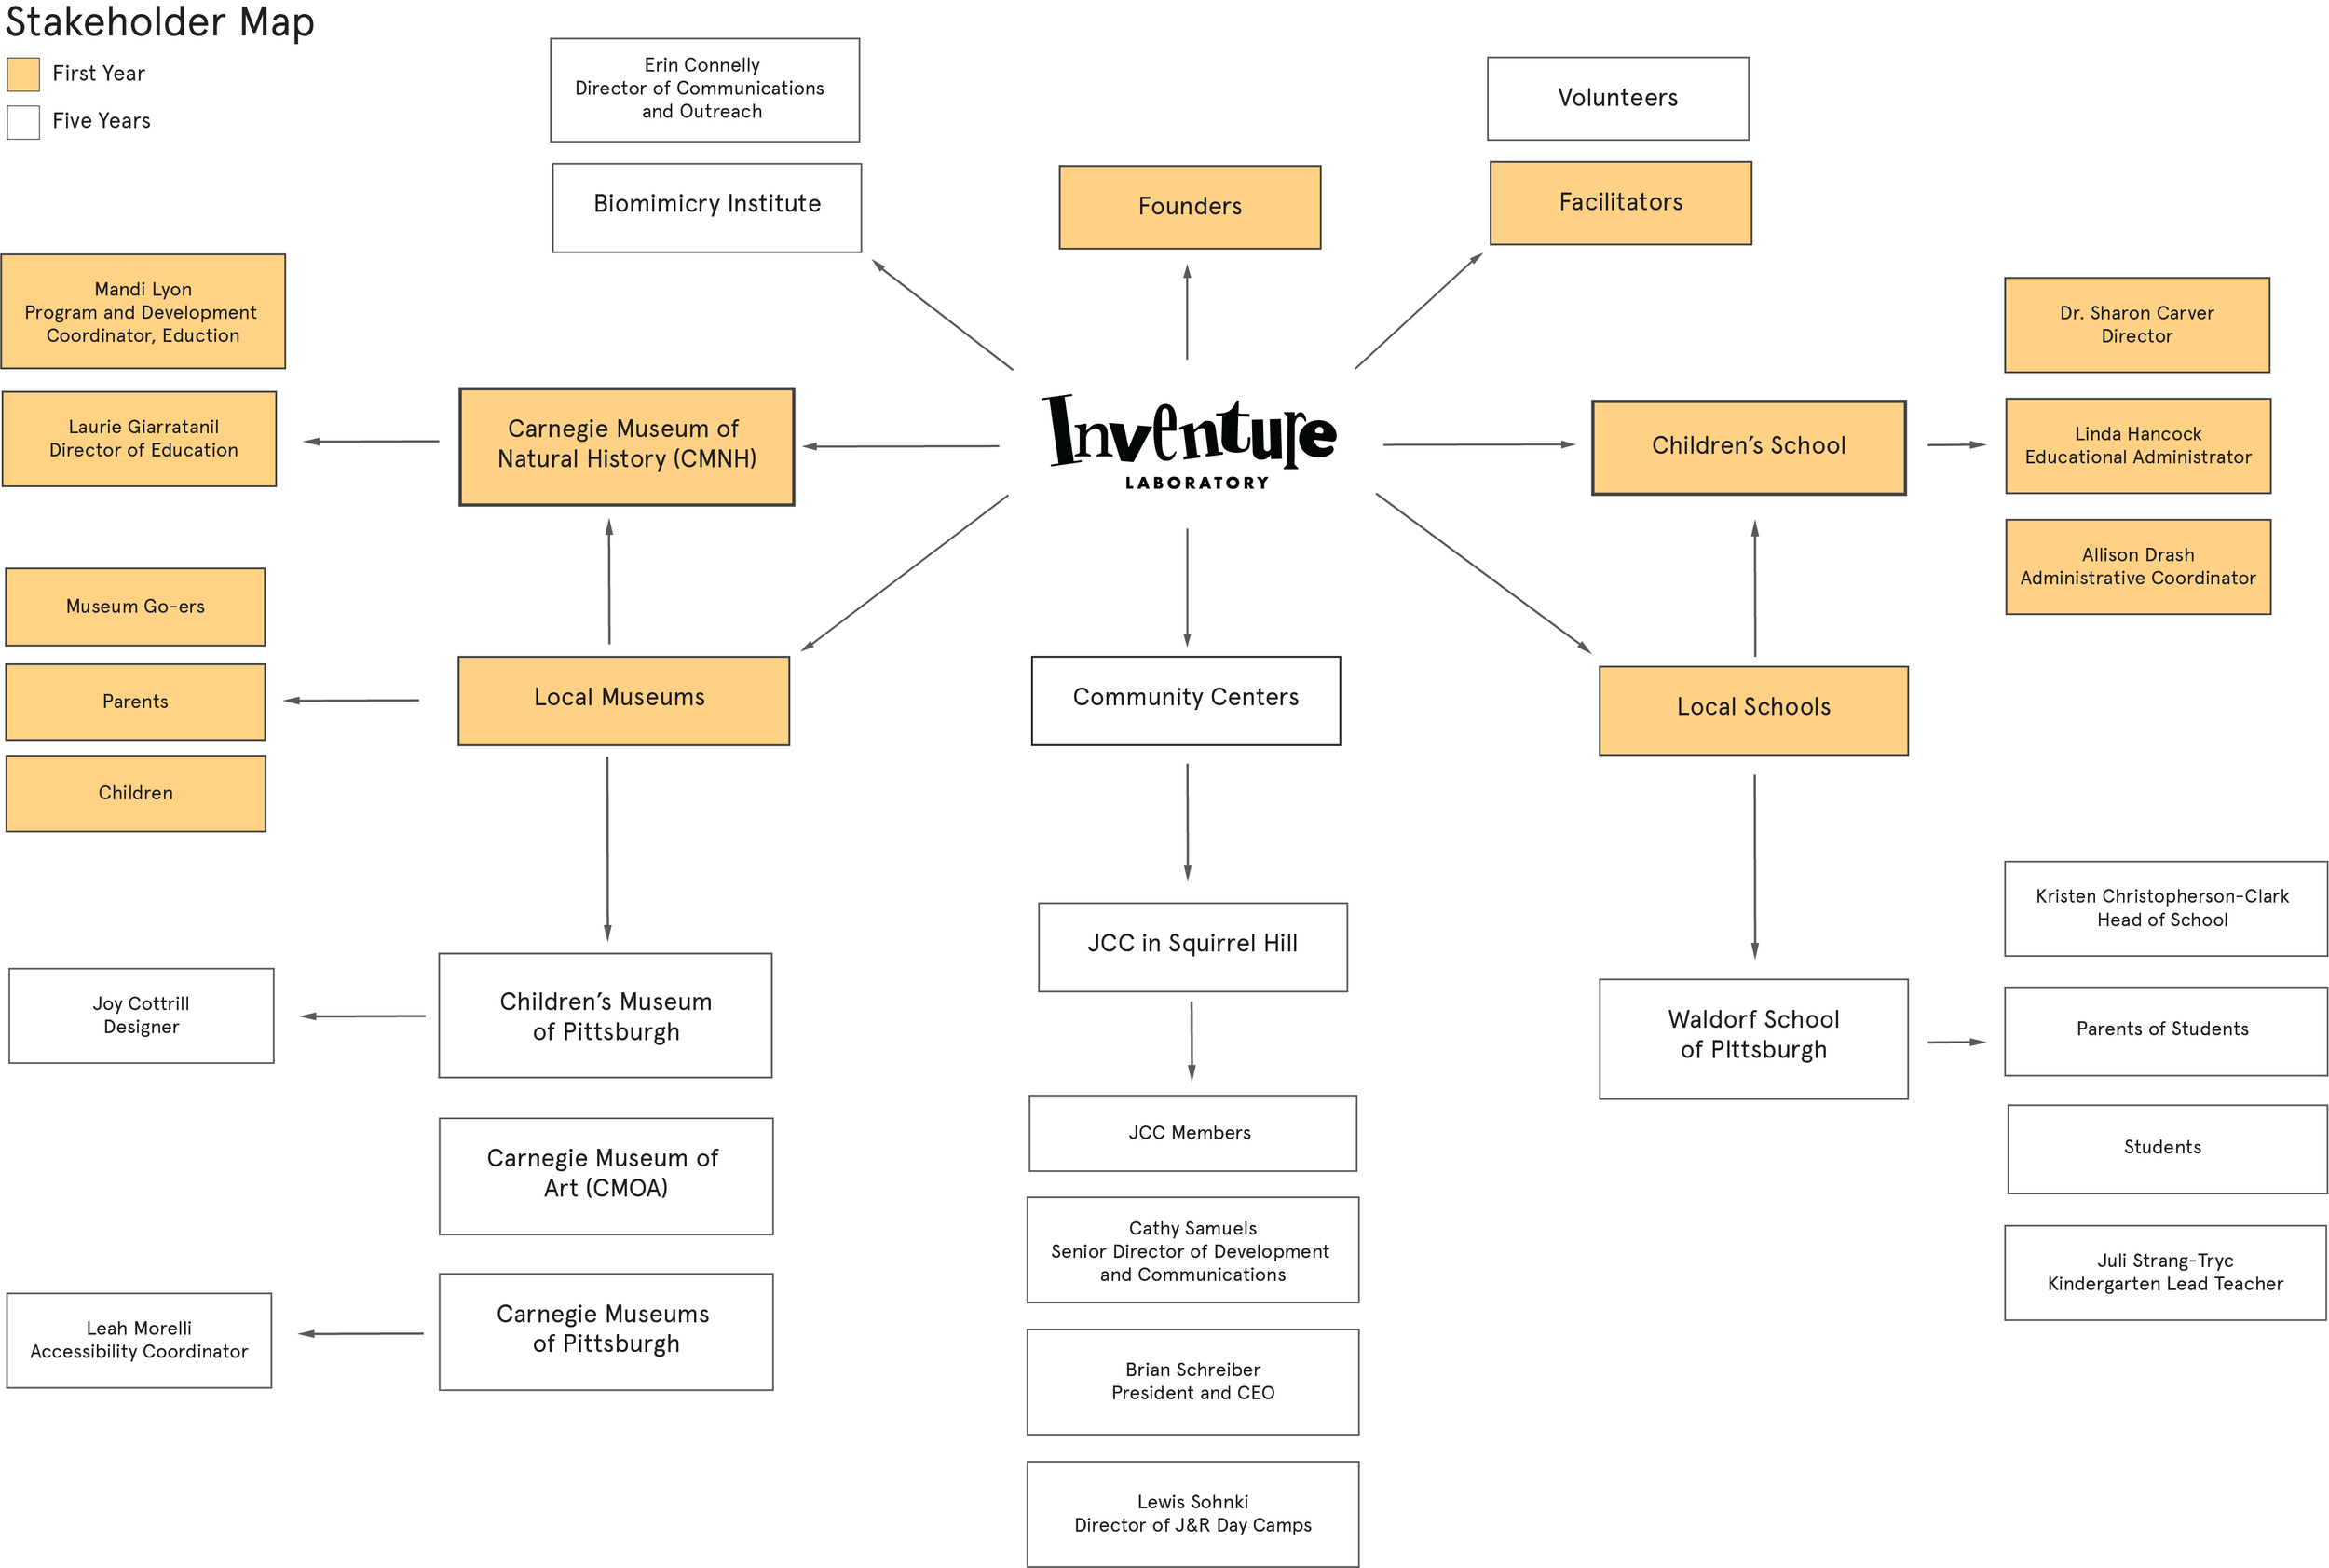 Copy of Stakeholder_Map_Final.png